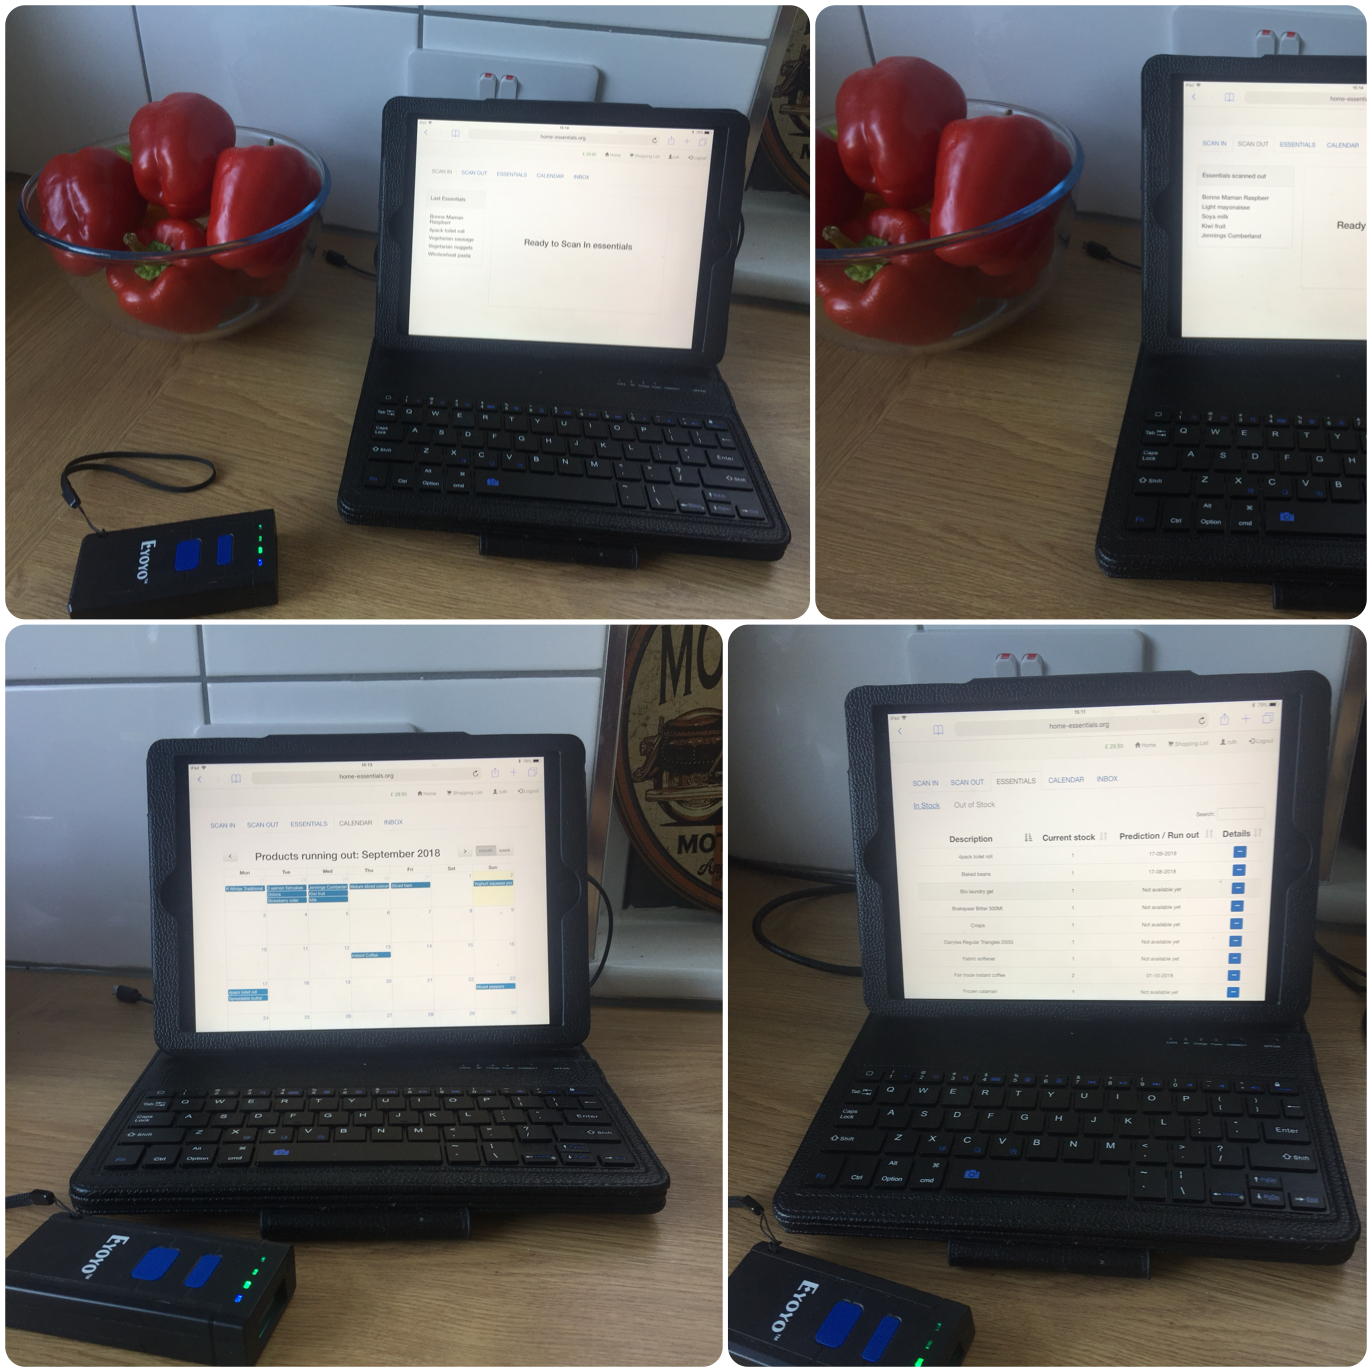 Four images of our web-based app running on an iPad